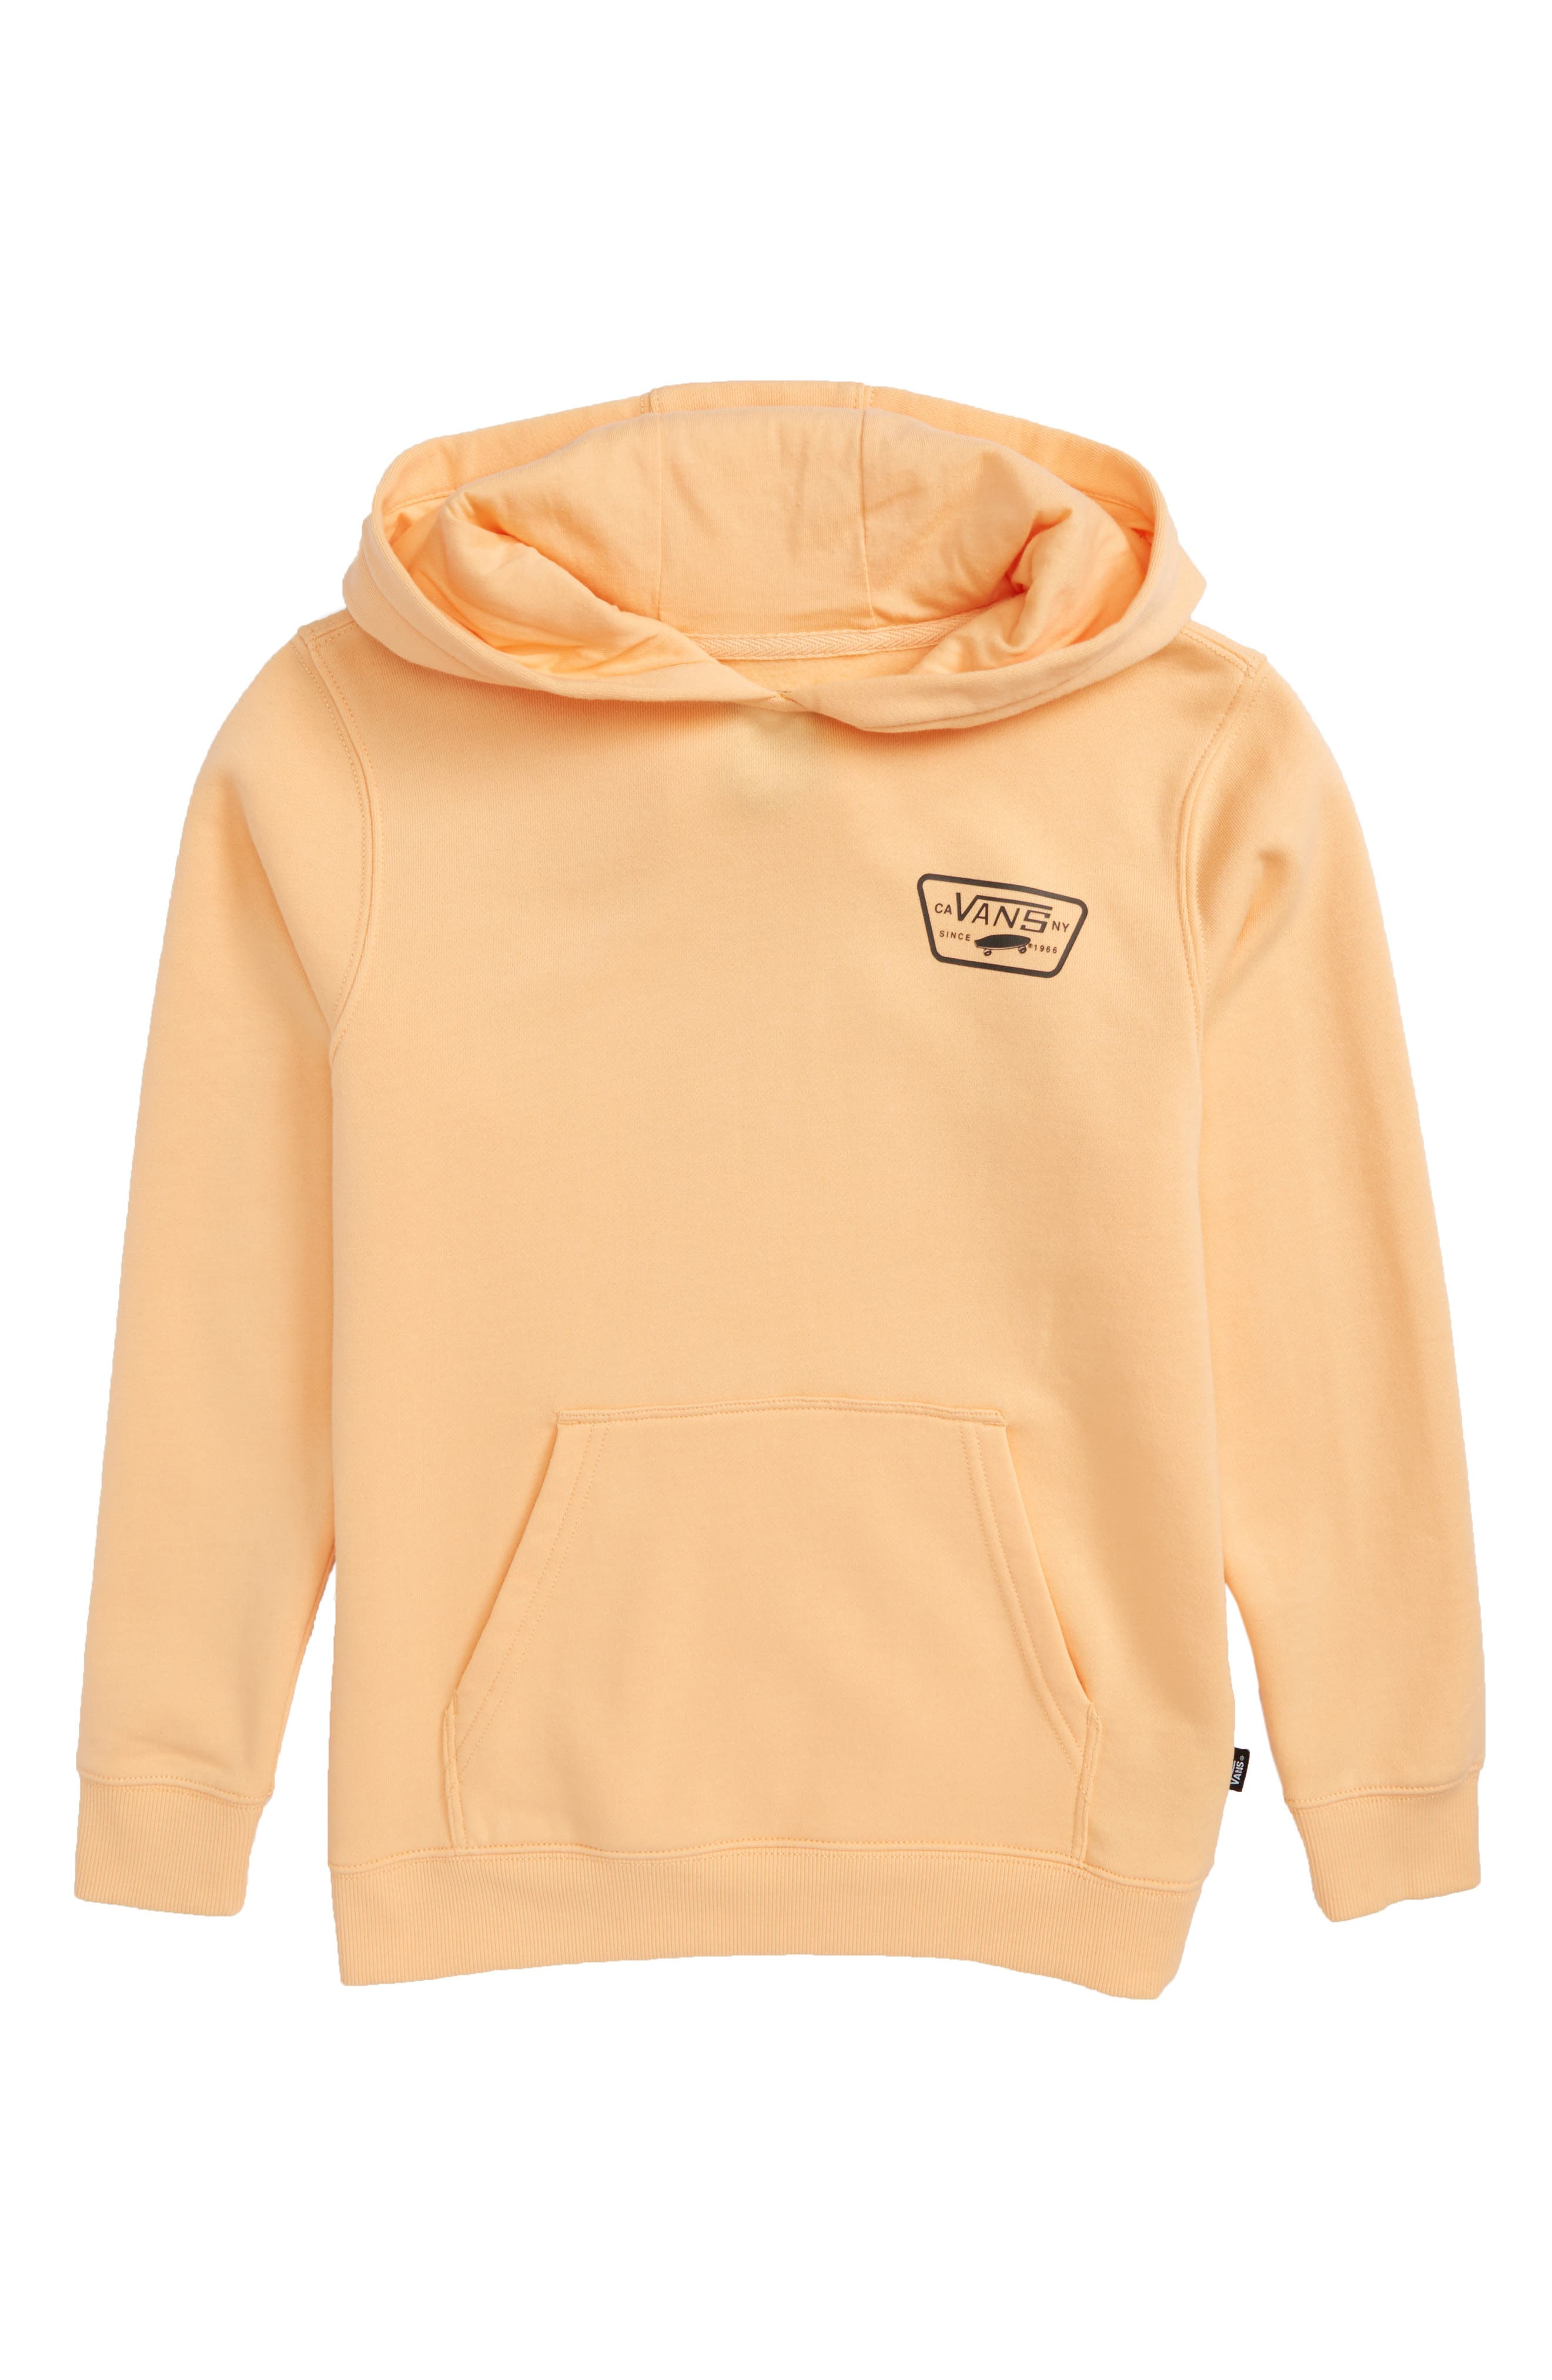 'Full Patched' Fleece Hoodie,                             Main thumbnail 1, color,                             Apricot Ice/ Black